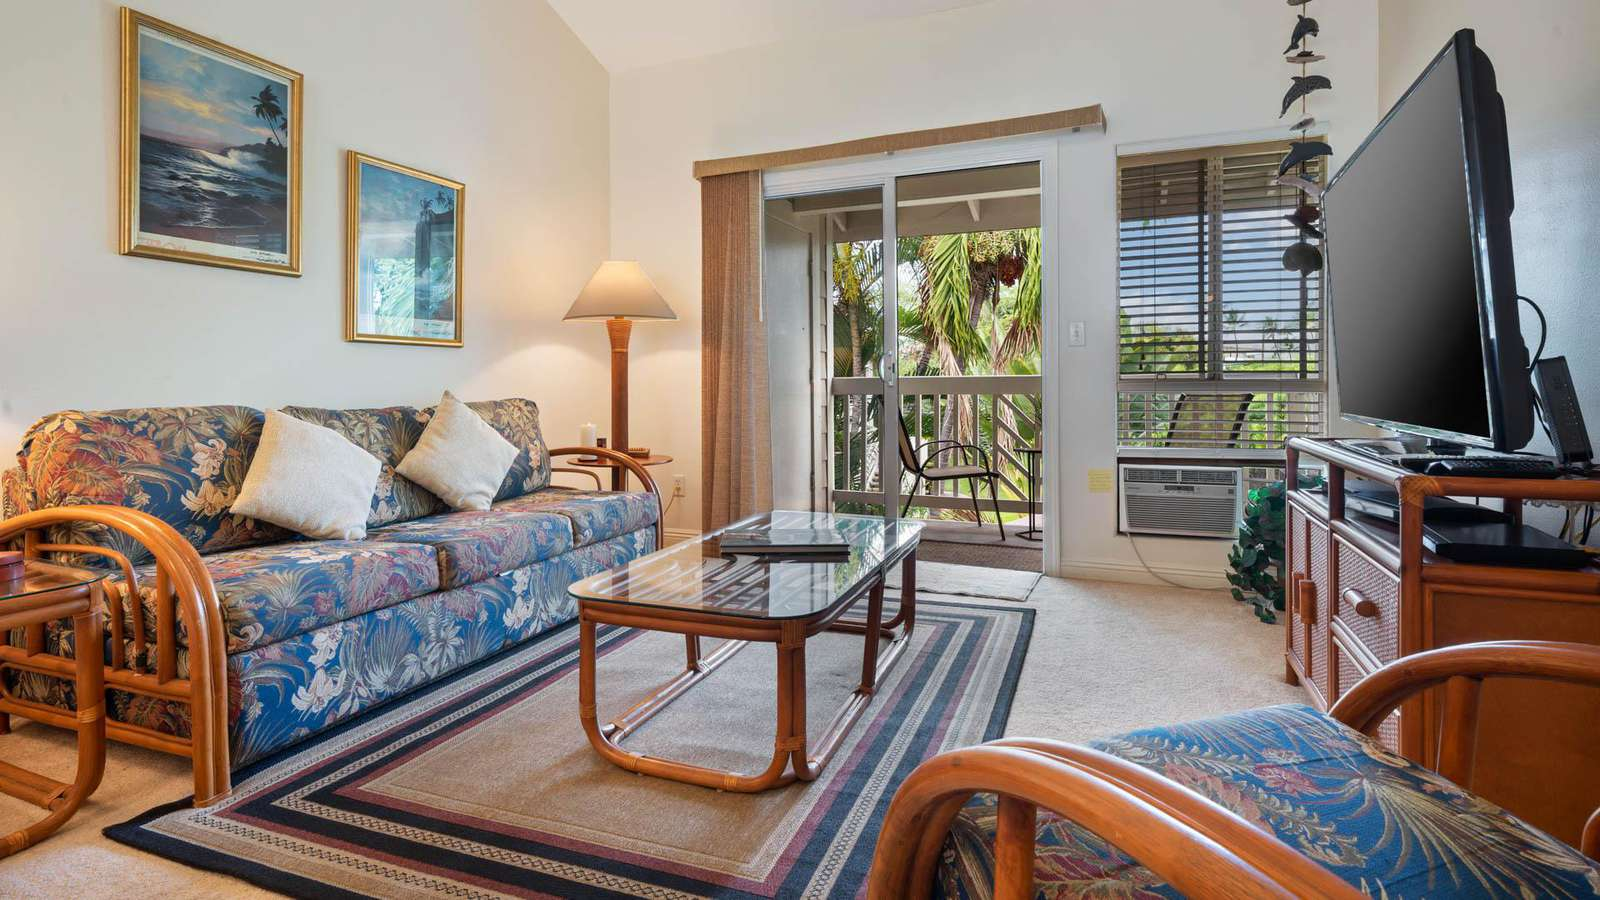 Roomy living area with large TV and lanai access.